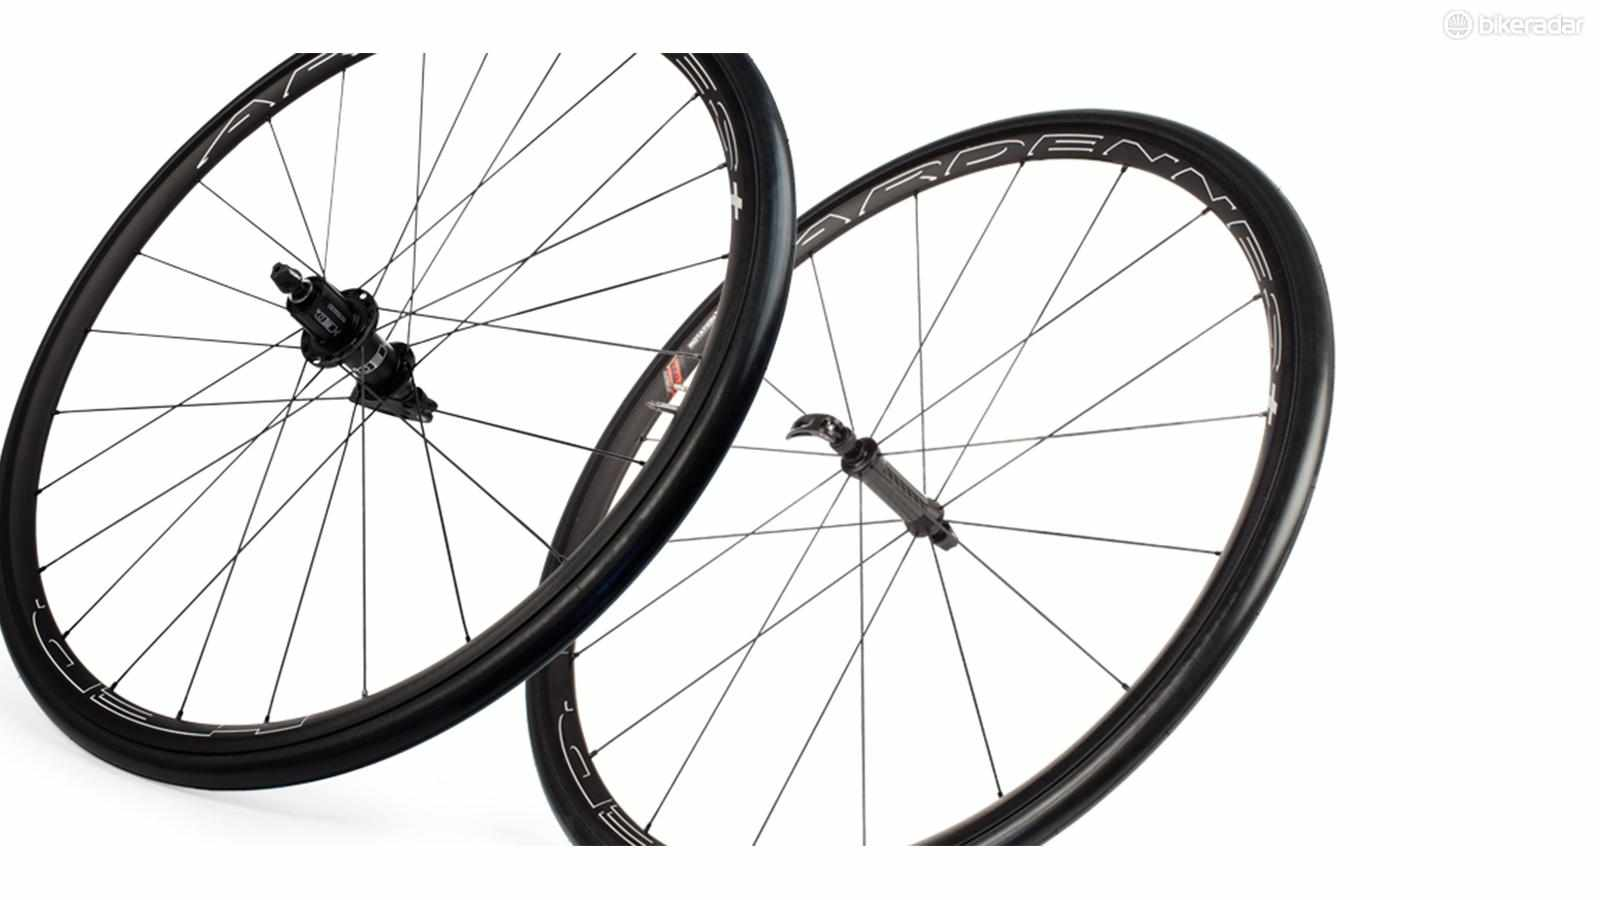 HED Cycling in conjunction with the CPSC has issued a recall for Ardennes Black and Jet Black rims